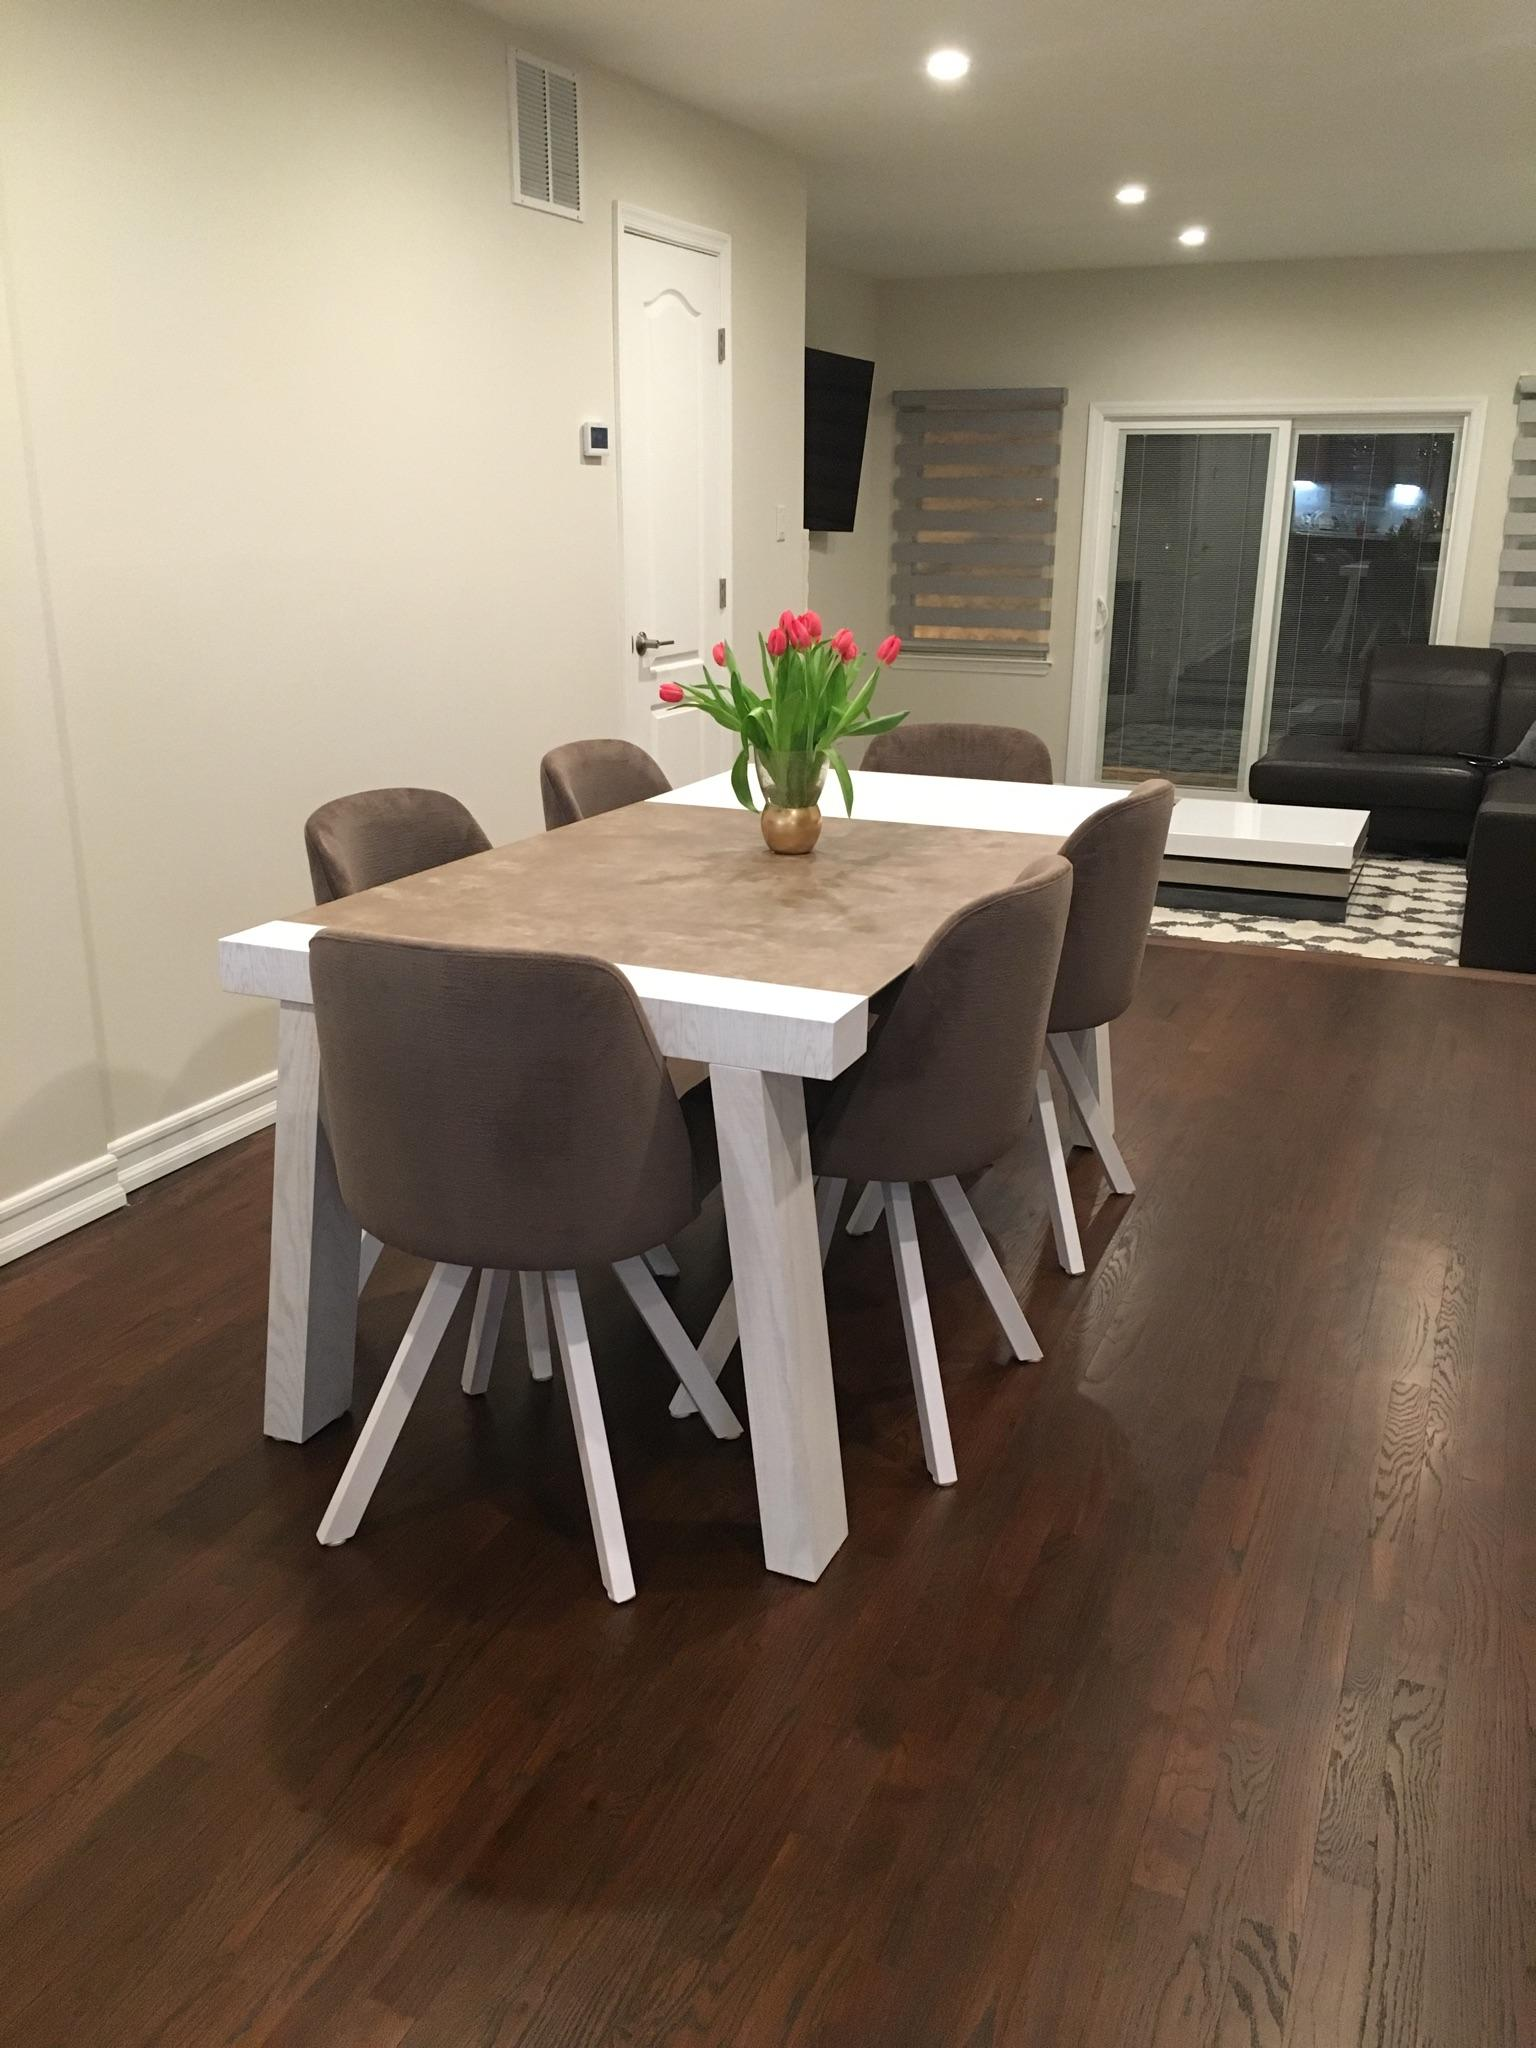 Reyna Dining Room With Albi Chairs Modern Formal Dining